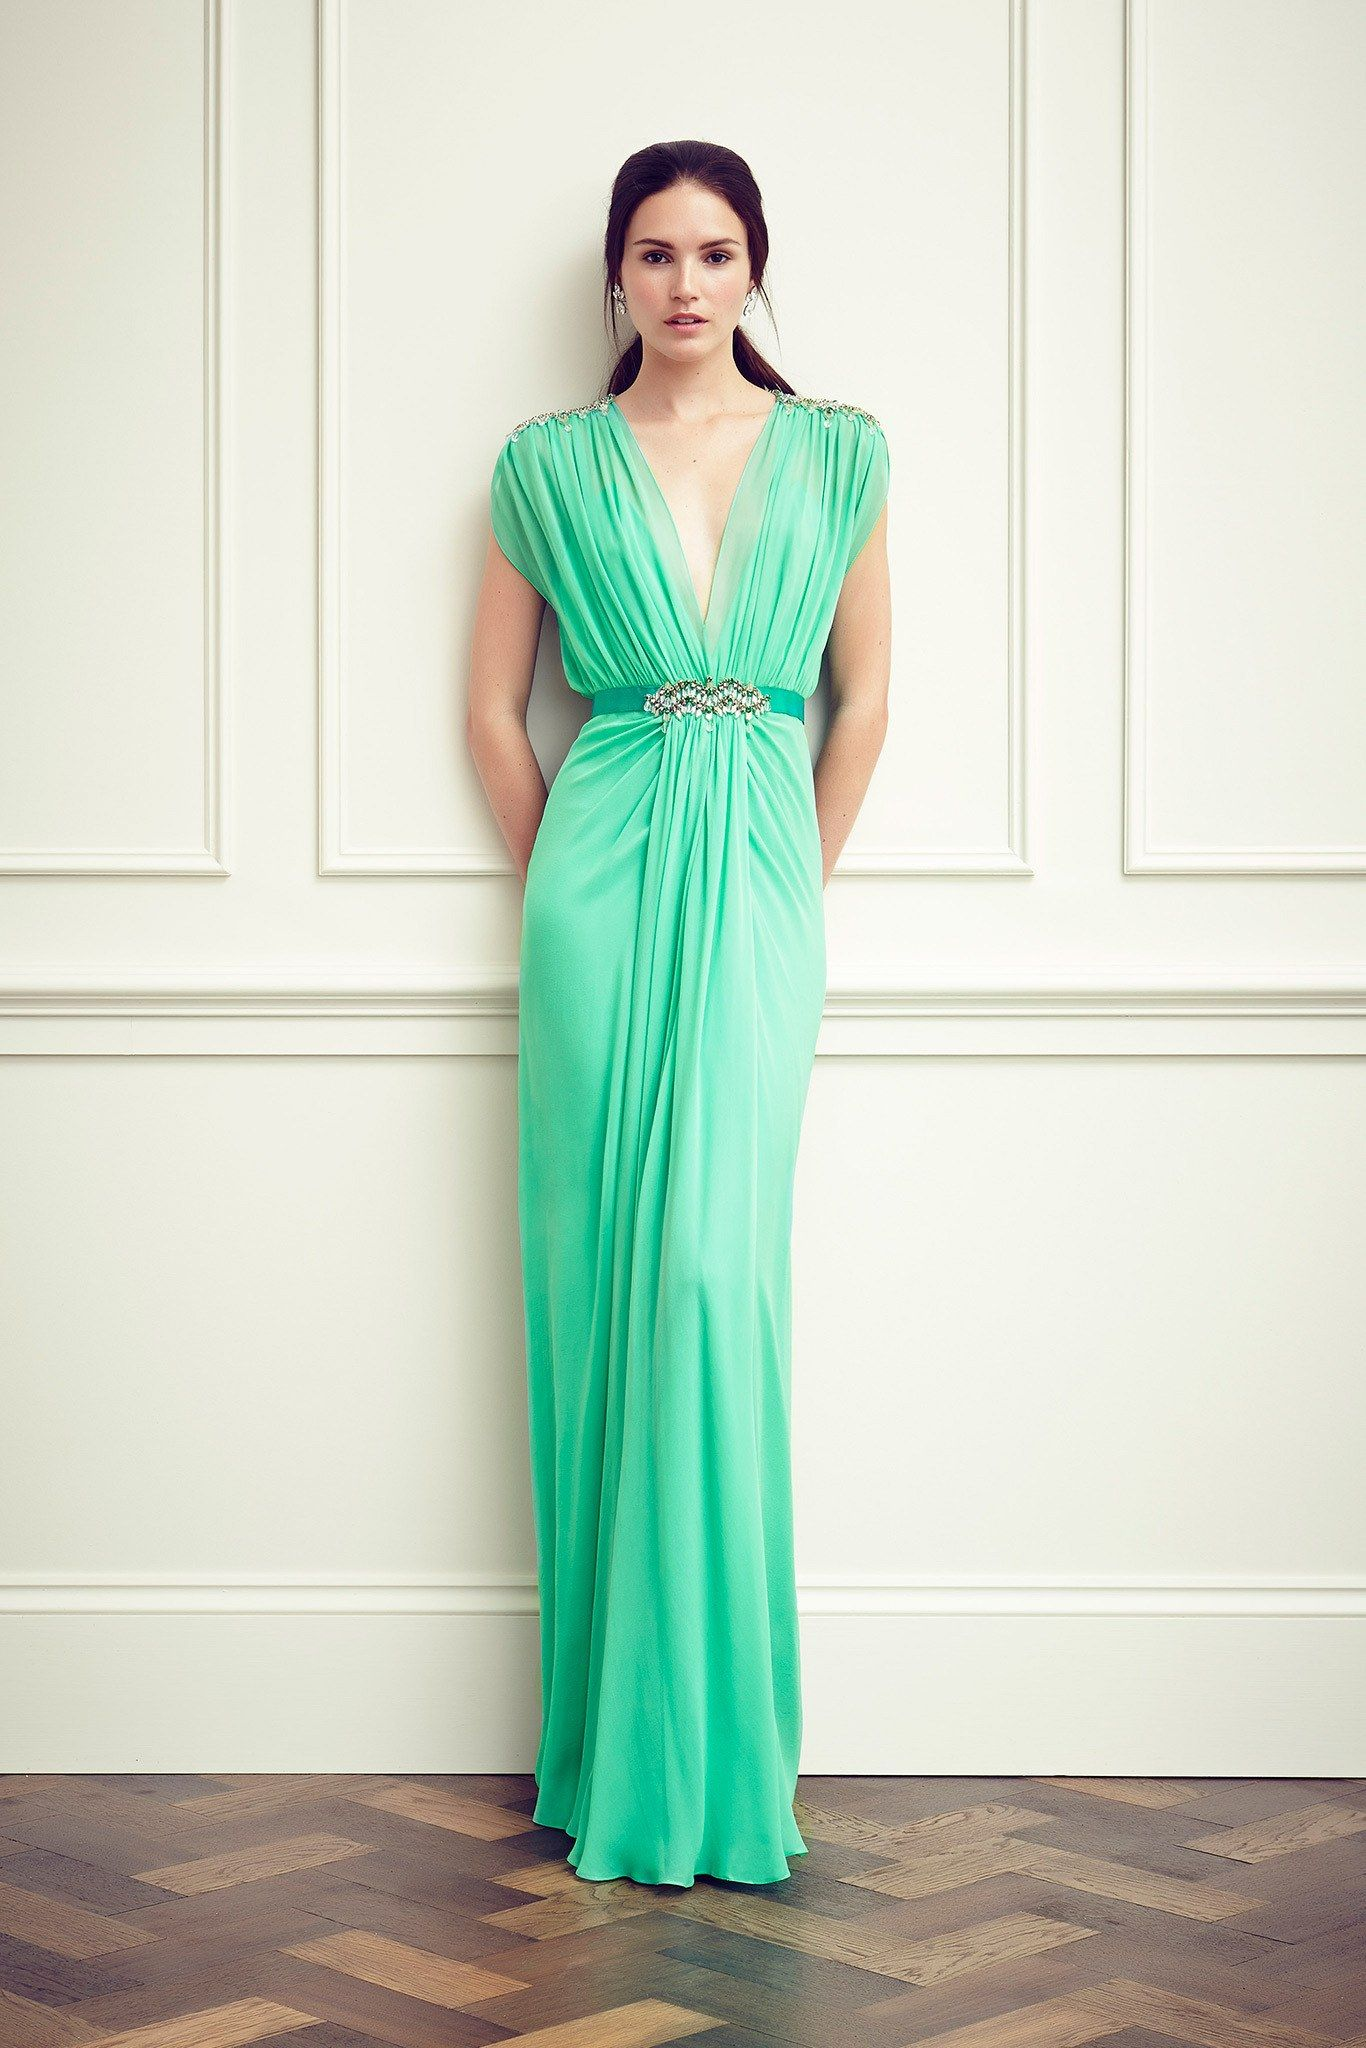 Jenny Packham Resort 2015 Fashion Show | Jenny packham, Resort 2015 ...